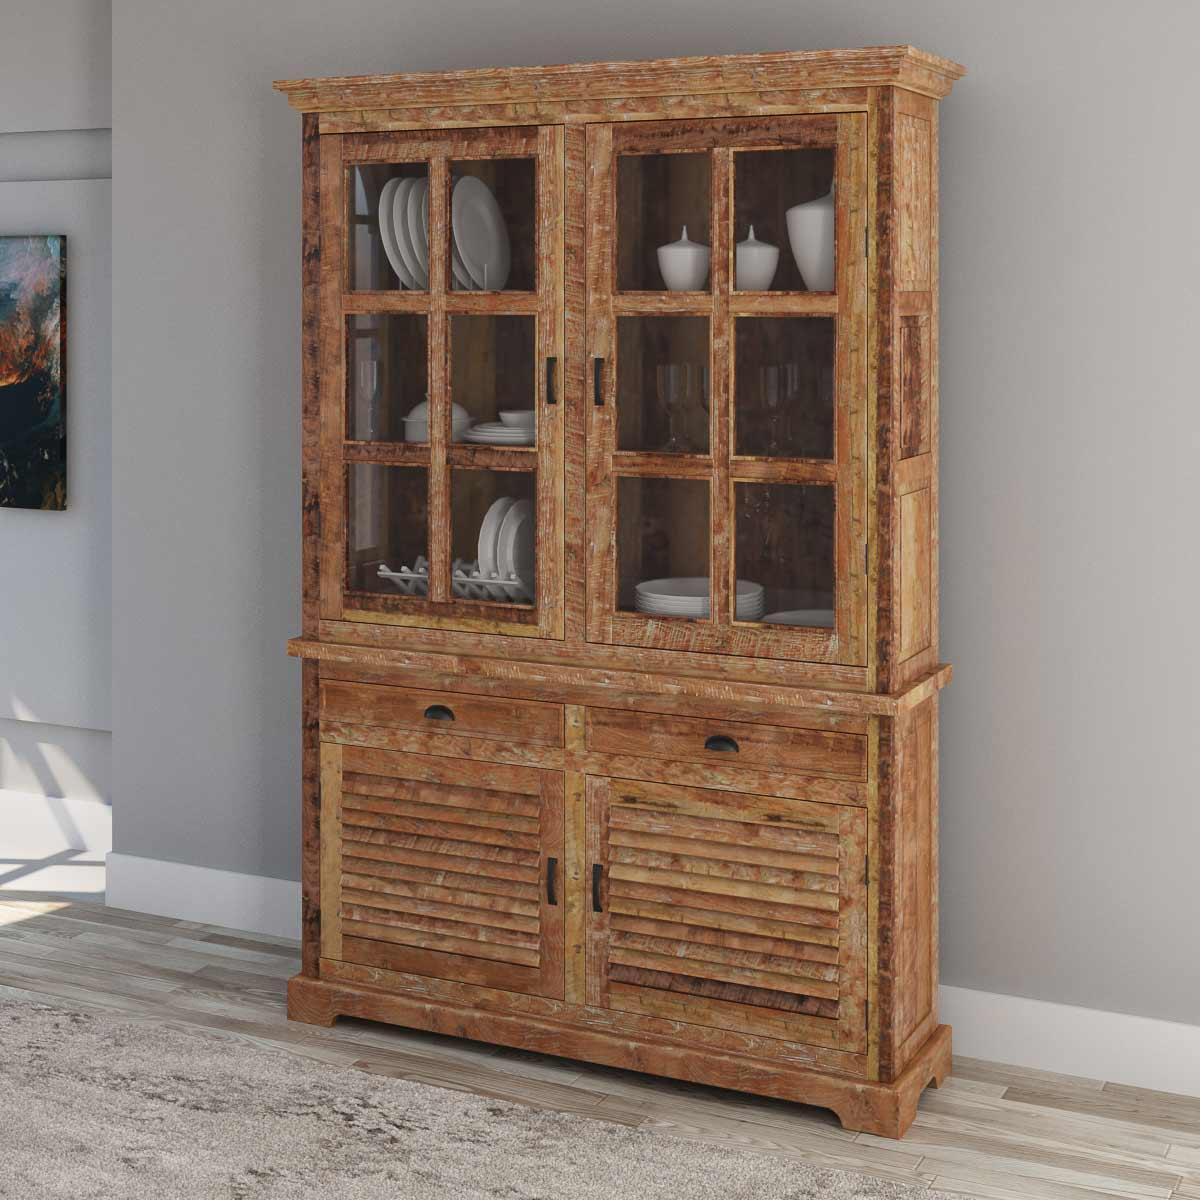 Rustic Teak Wood Tall Handcrafted China Hutch